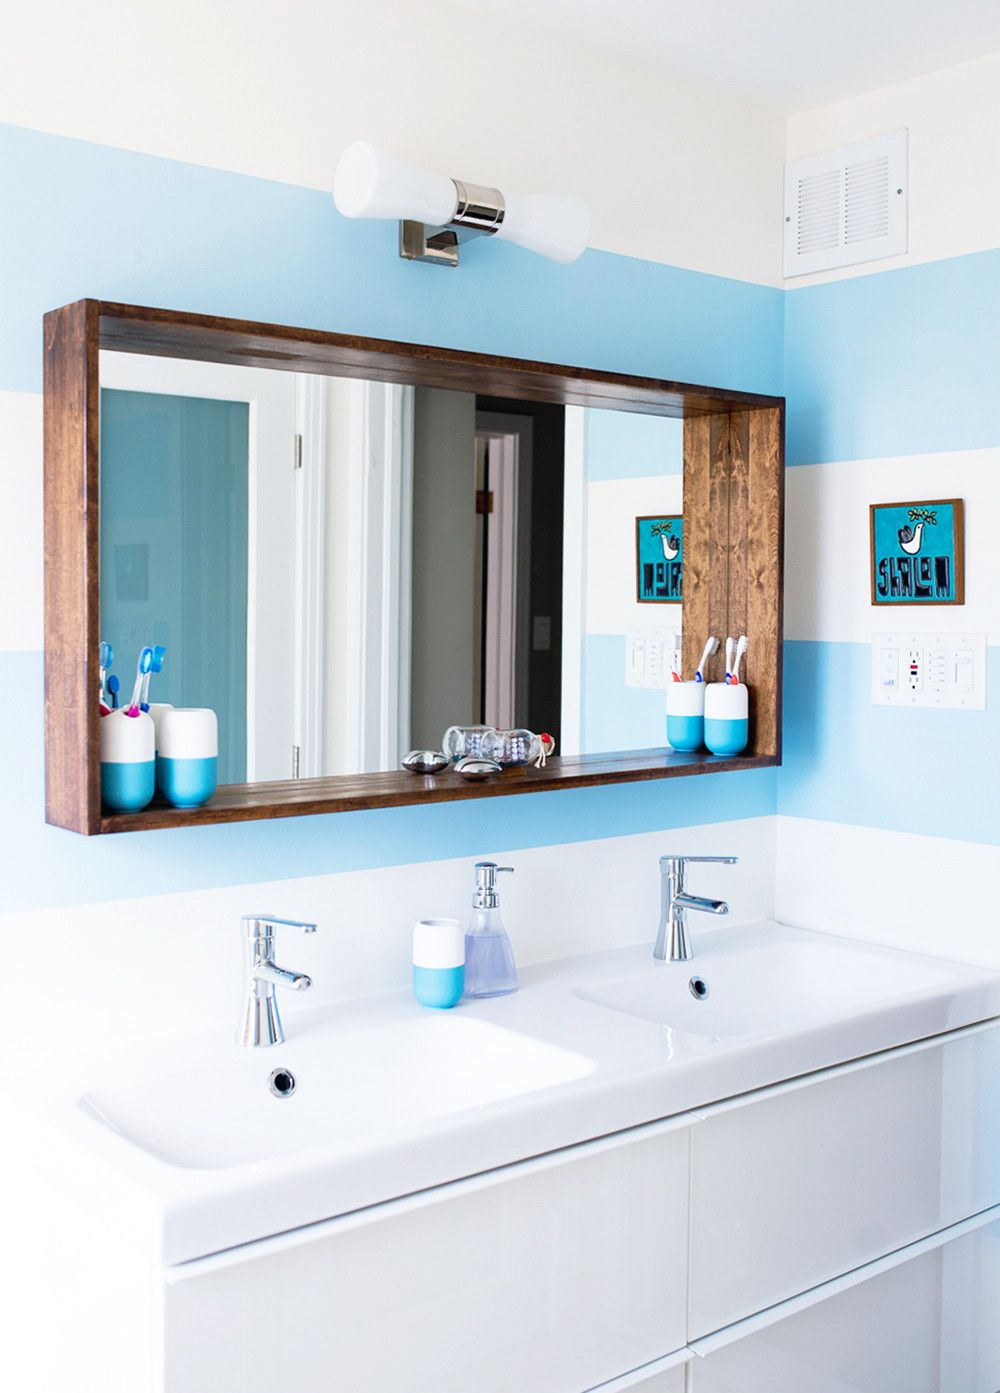 Big Vanity Mirror With Lights Unique 17 Bathroom Mirrors Ideas  Decor & Design Inspirations For Decorating Inspiration